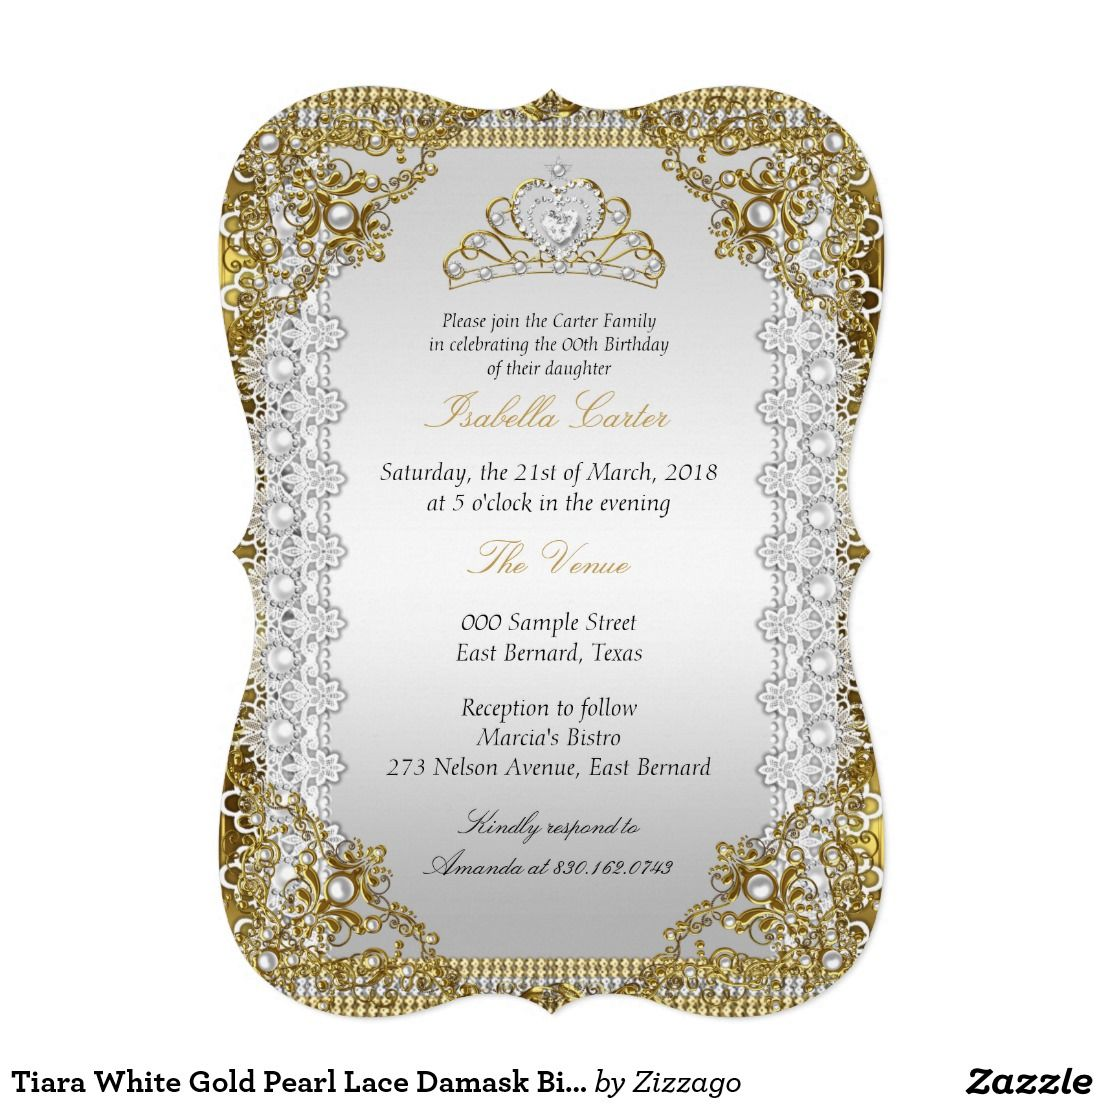 Tiara White Gold Pearl Lace Damask Birthday Party 5x7 Paper ...